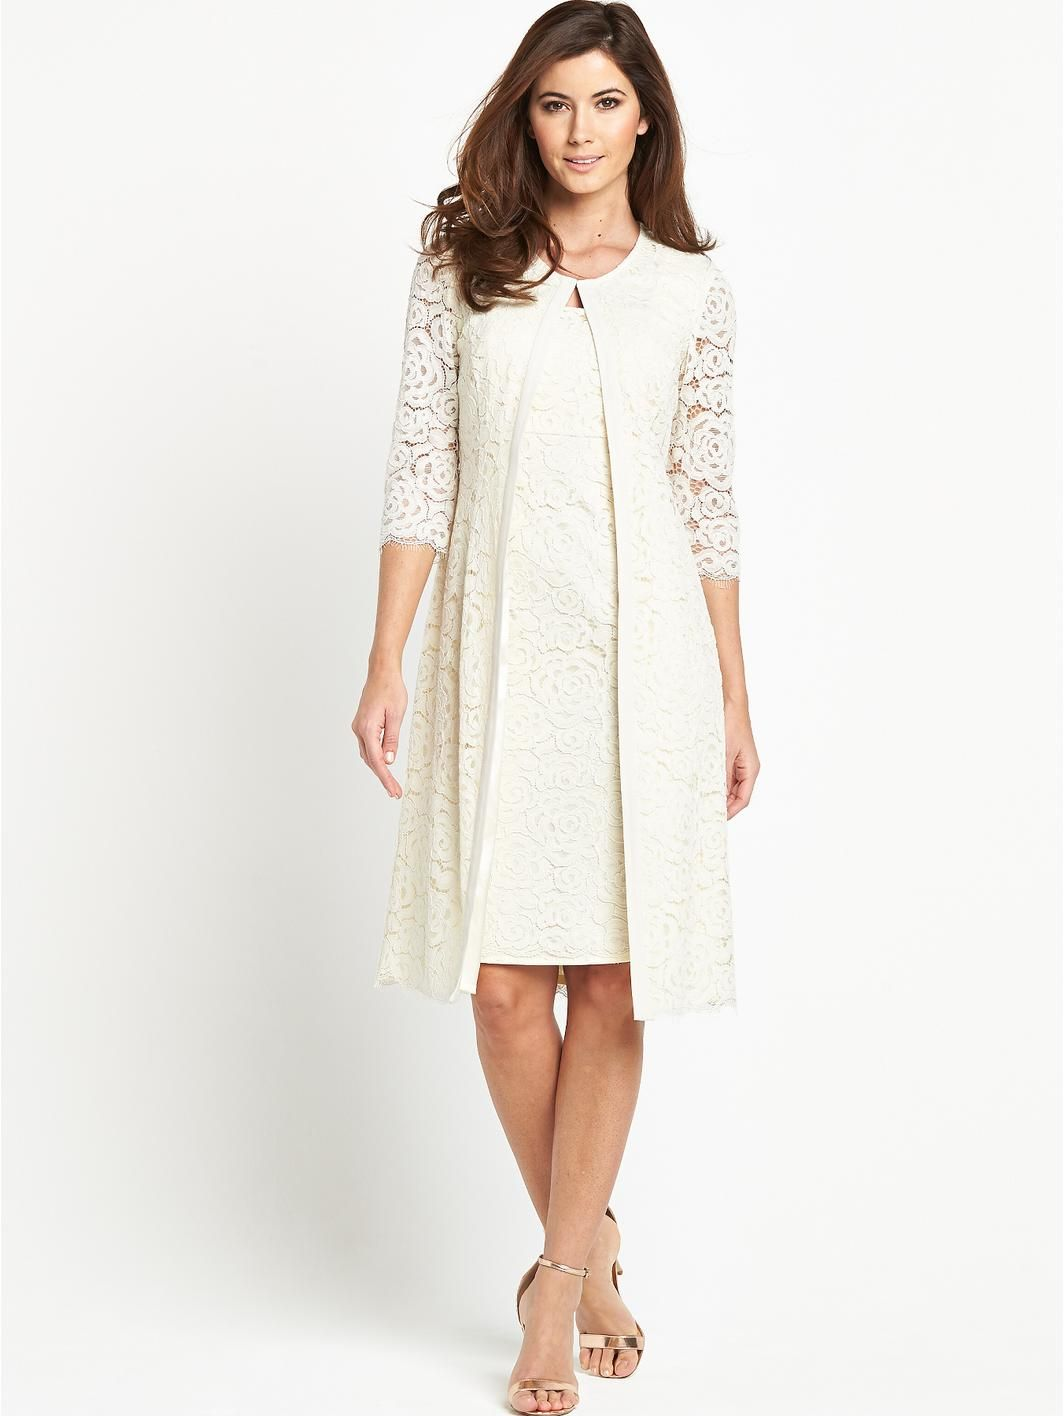 Lace Coat and Dress, http://www.very.co.uk/berkertex-lace-coat-and ...